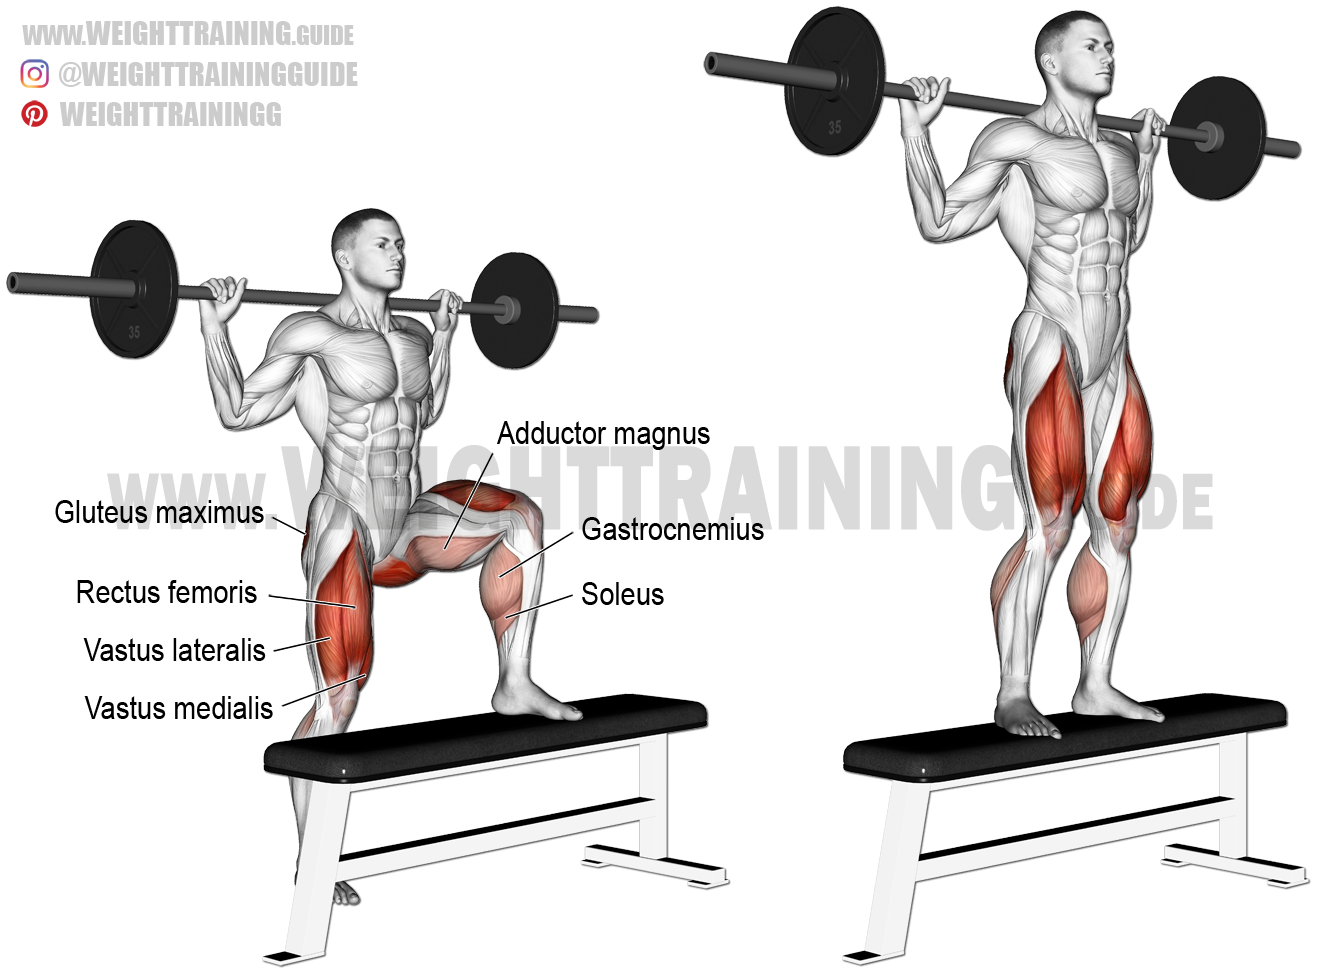 Barbell Step Up Exercise Instructions And Video Weight Training Guide Step Up Workout Weight Training Exercise